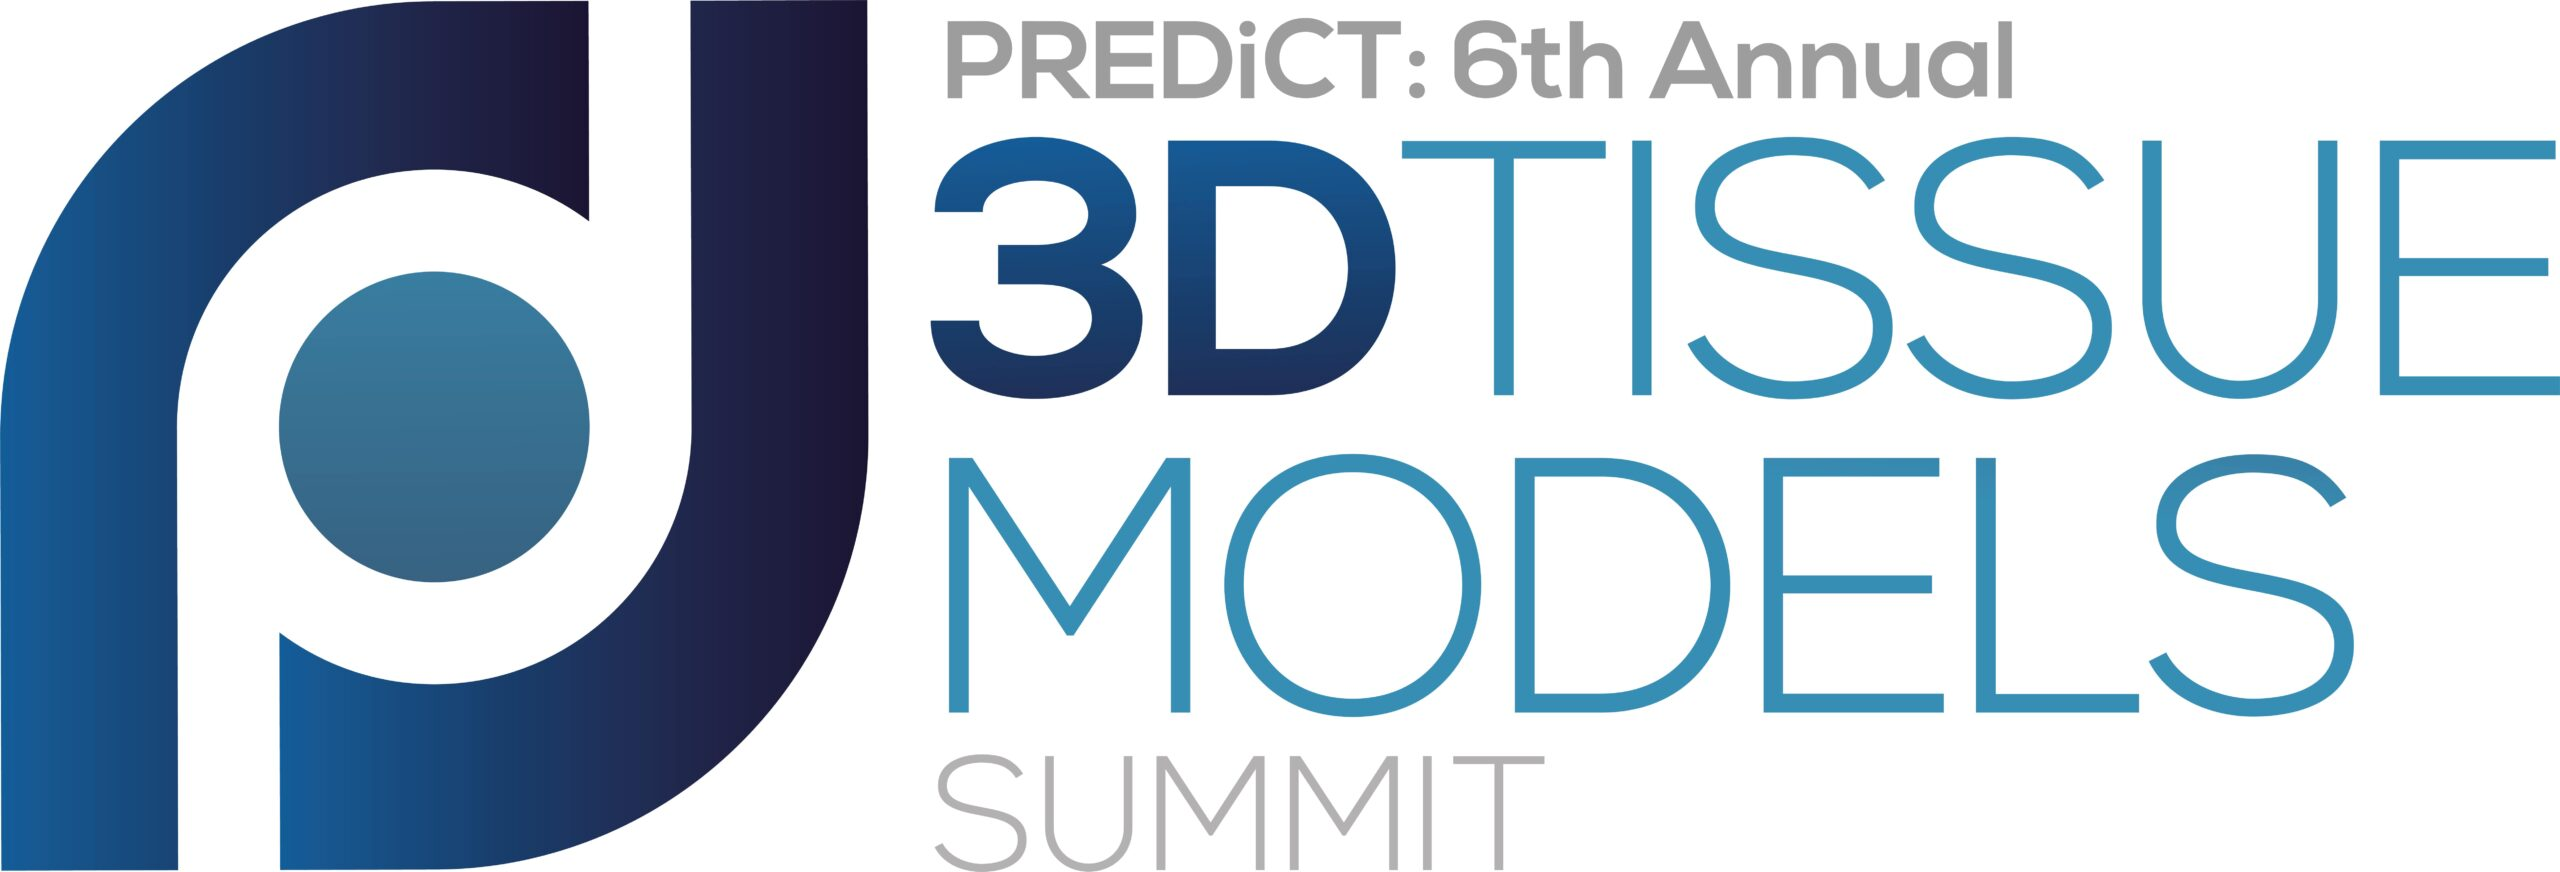 20326 - 3D Tissue Models Summit-min